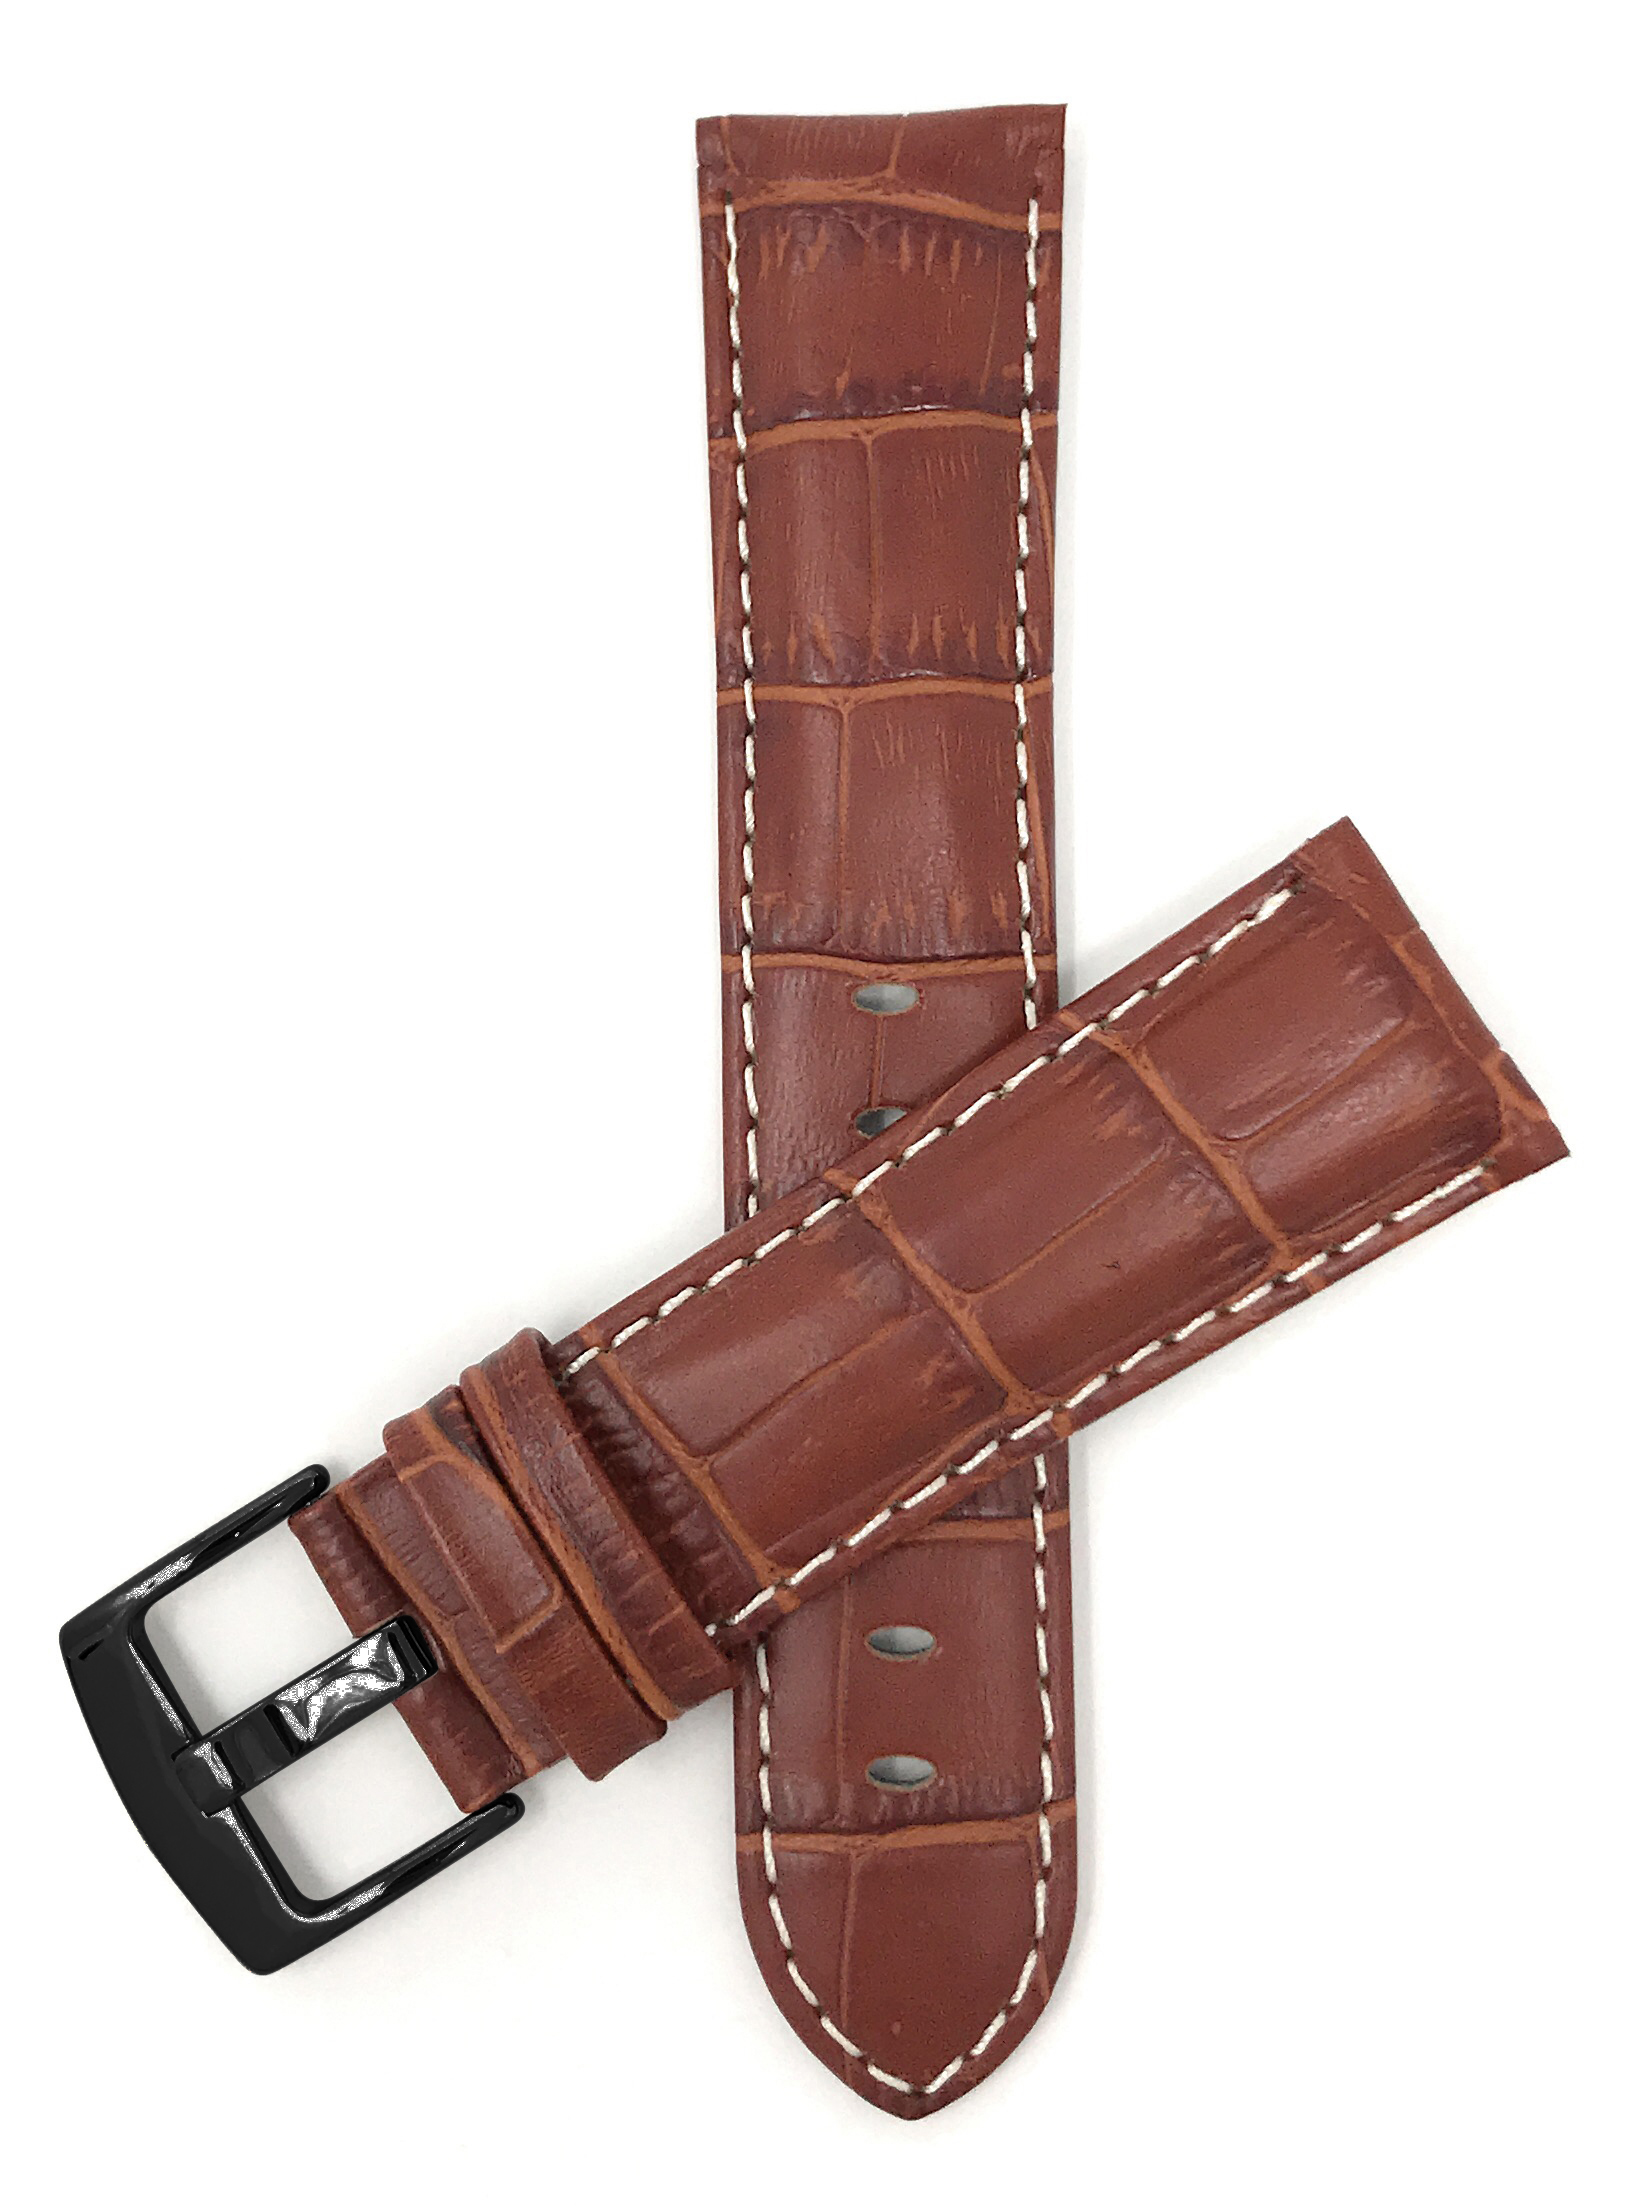 Bandini-Mens-Watch-Band-Alligator-Style-Leather-Strap-18mm-26mm-15-Colors thumbnail 84